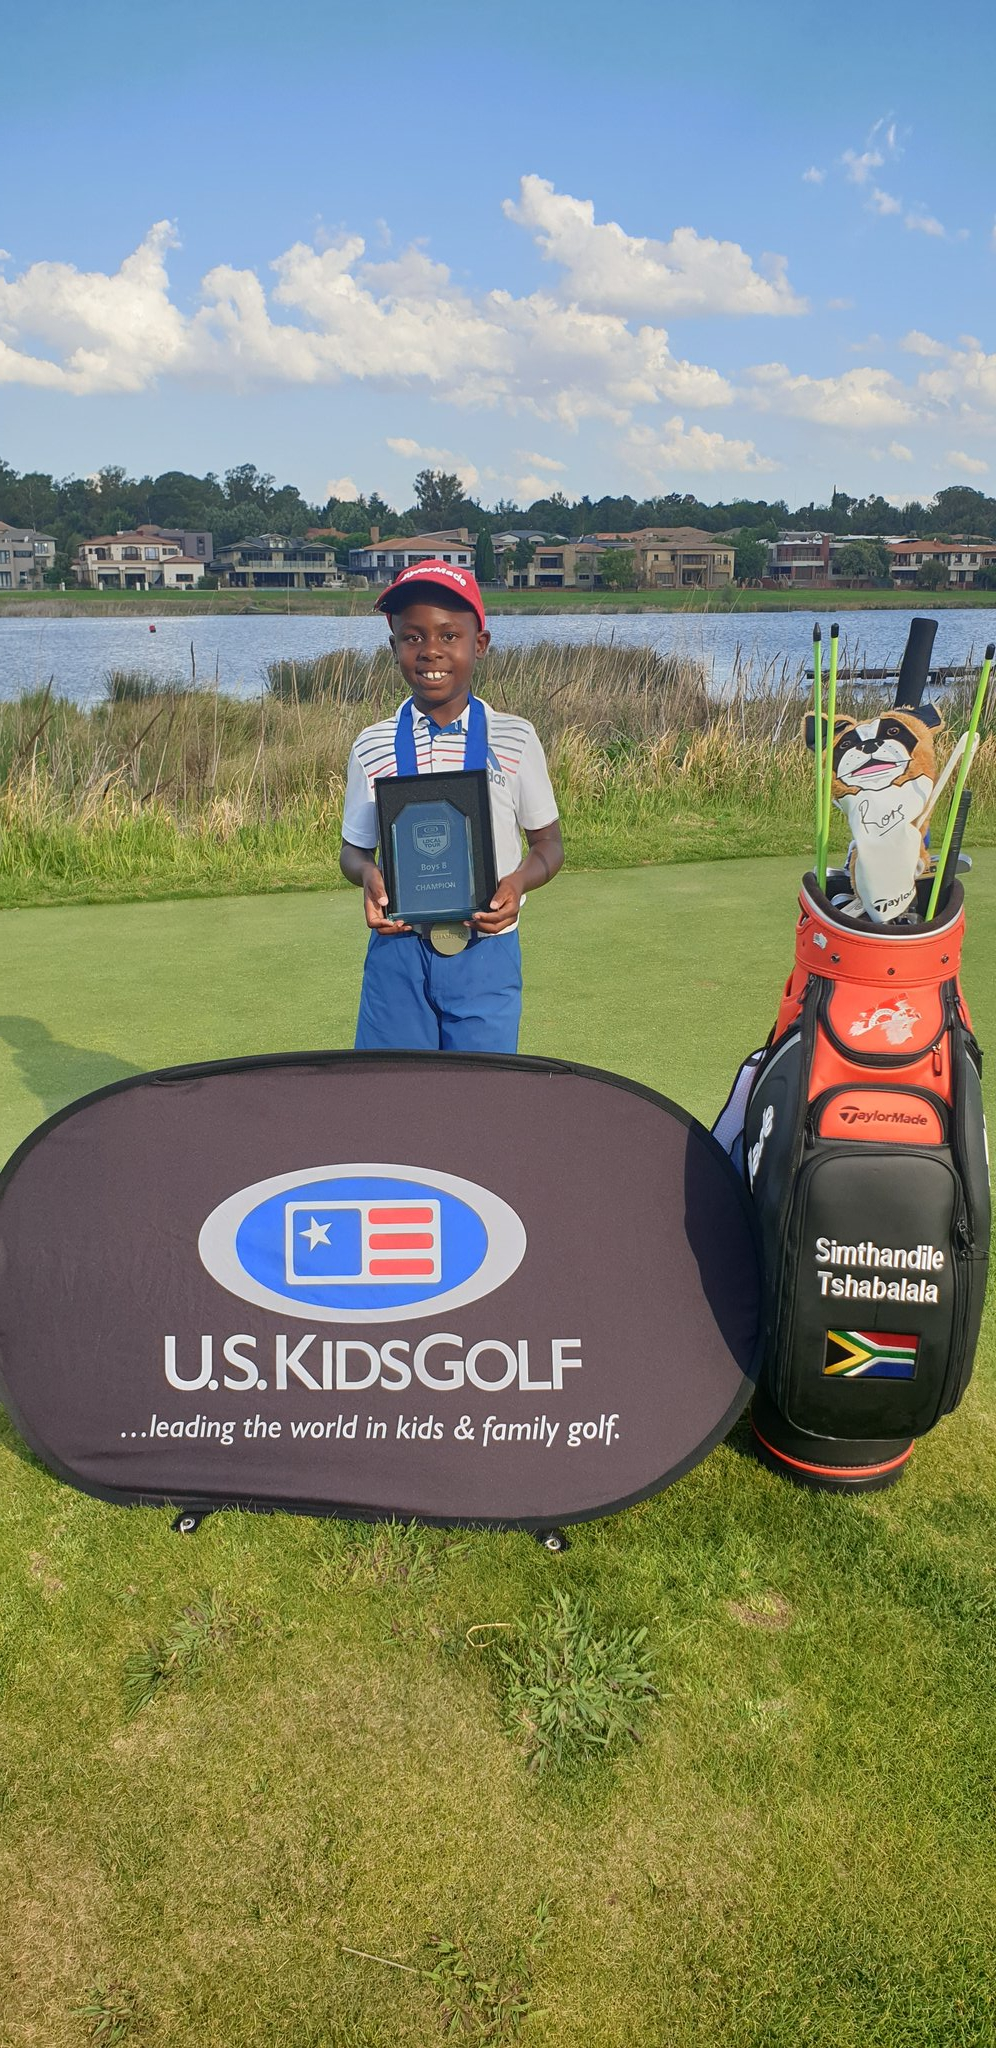 I have been crowned the Tour Championship Champion after winning 6 out of 6 tournaments this season, ending the year on a high. Thank you God and thank you everyone for your support 🙏🏽 #SimTiger  #Champion #Championship ⛳🏌️♂️ https://t.co/7XDMzyJ7XQ